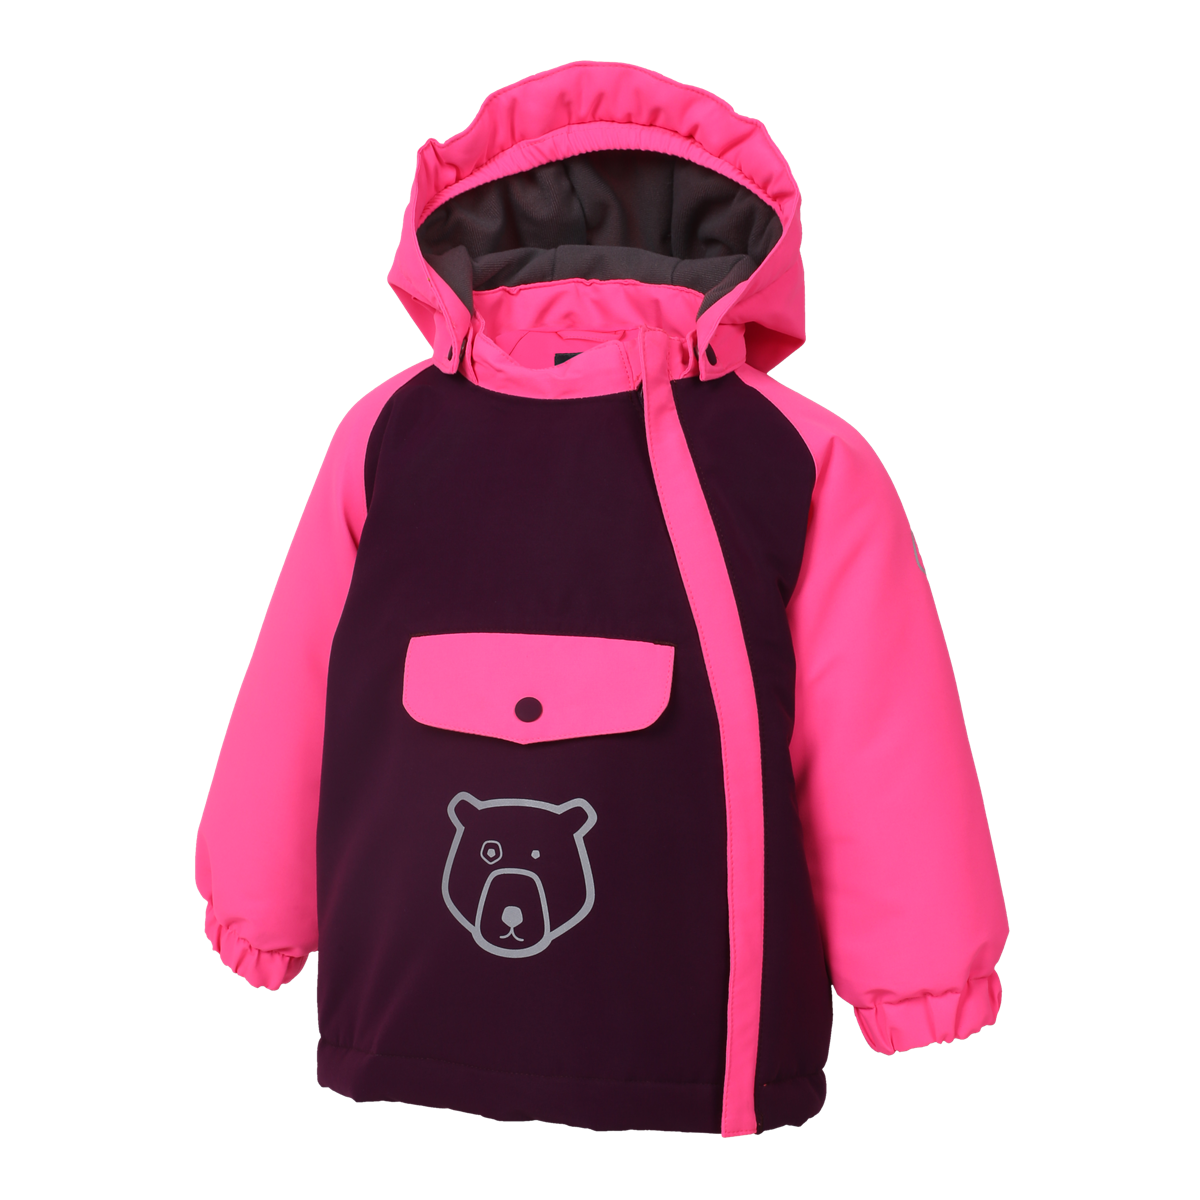 b6daf44dc ... Toddler Girls Insulated Ski Jacket Pickled Beet. 0 (Be the first to add  a review!)